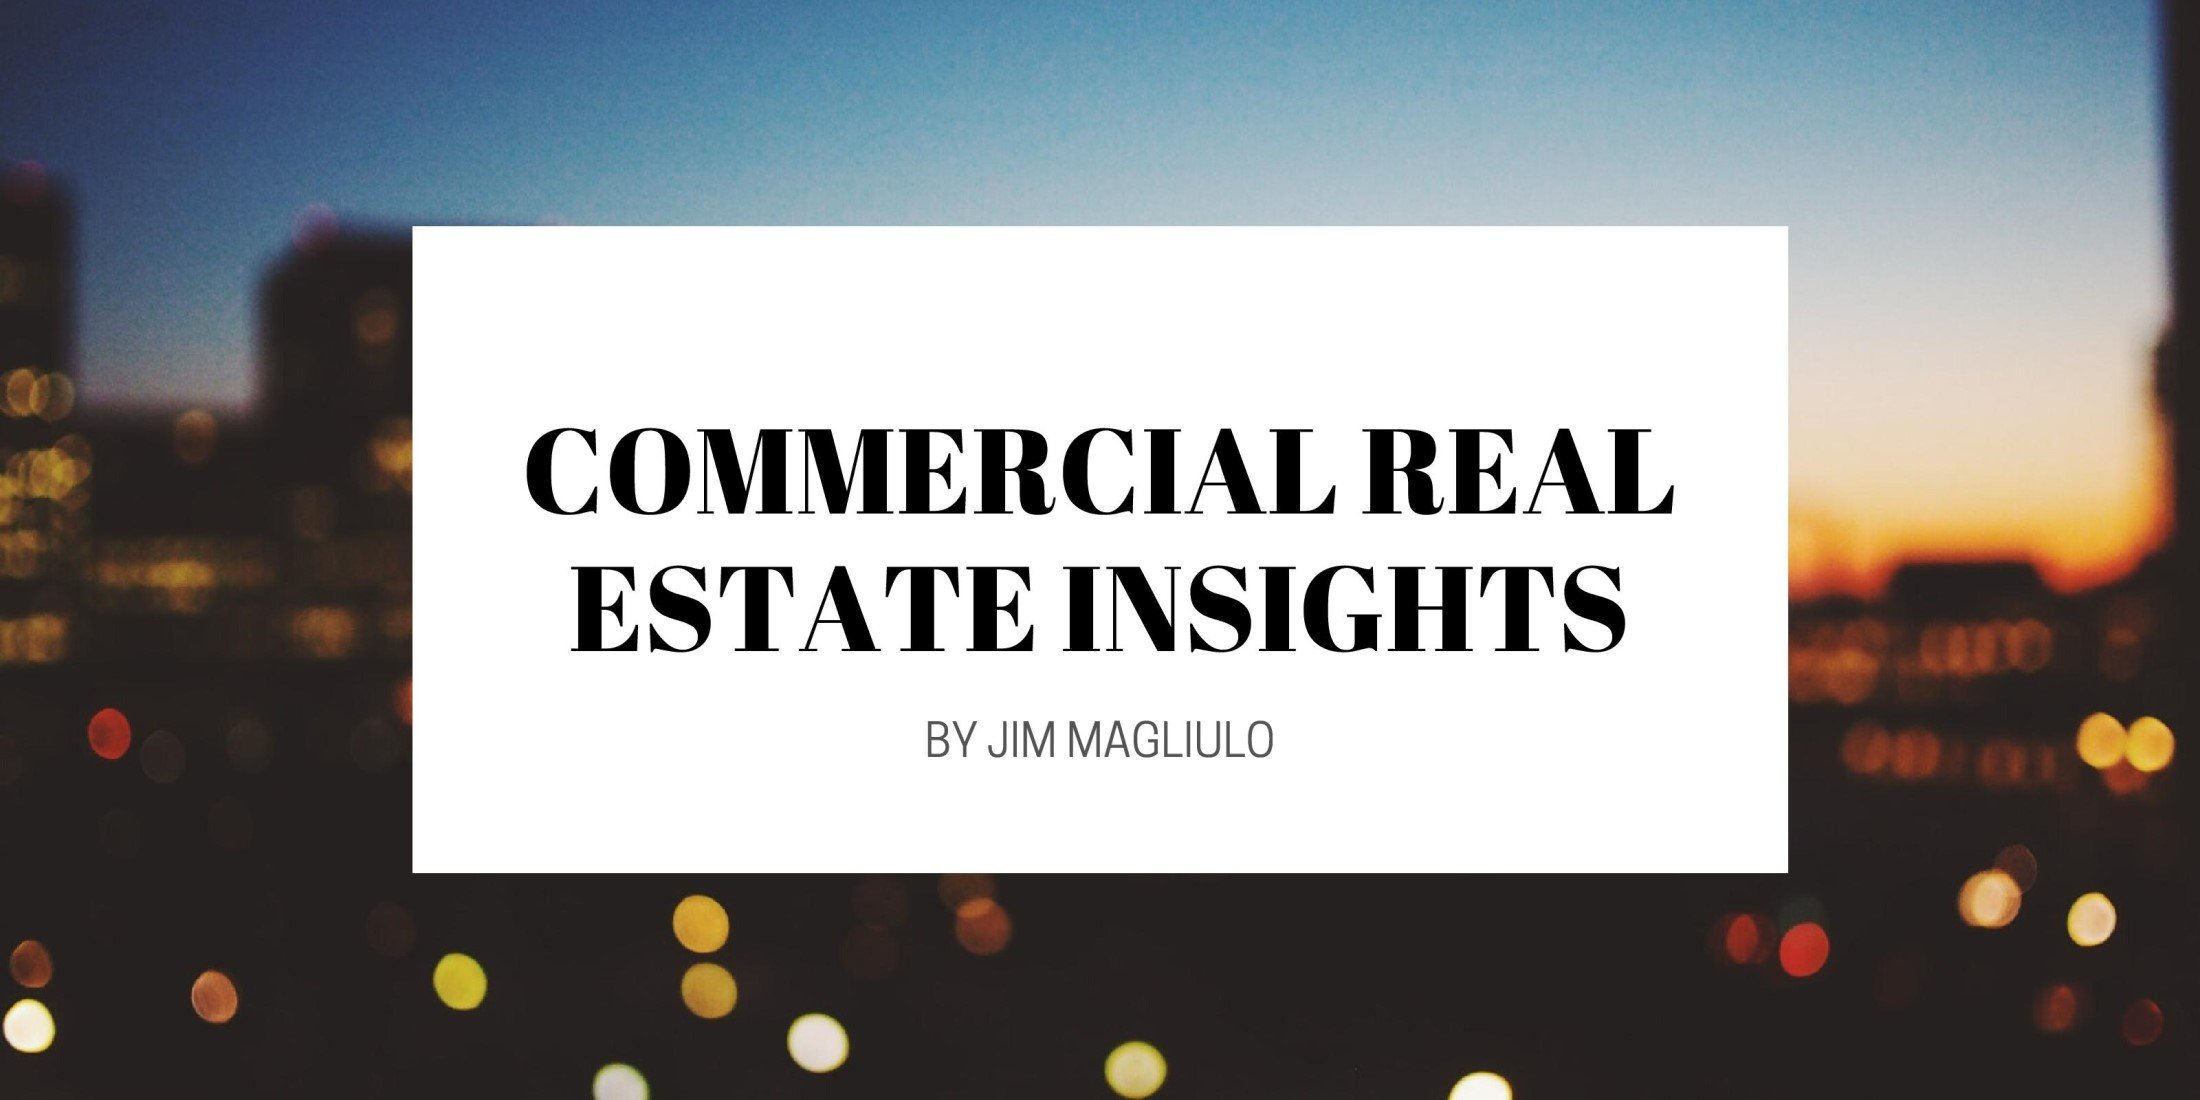 COMMERCIAL REAL ESTATE INSIGHTS-page-001